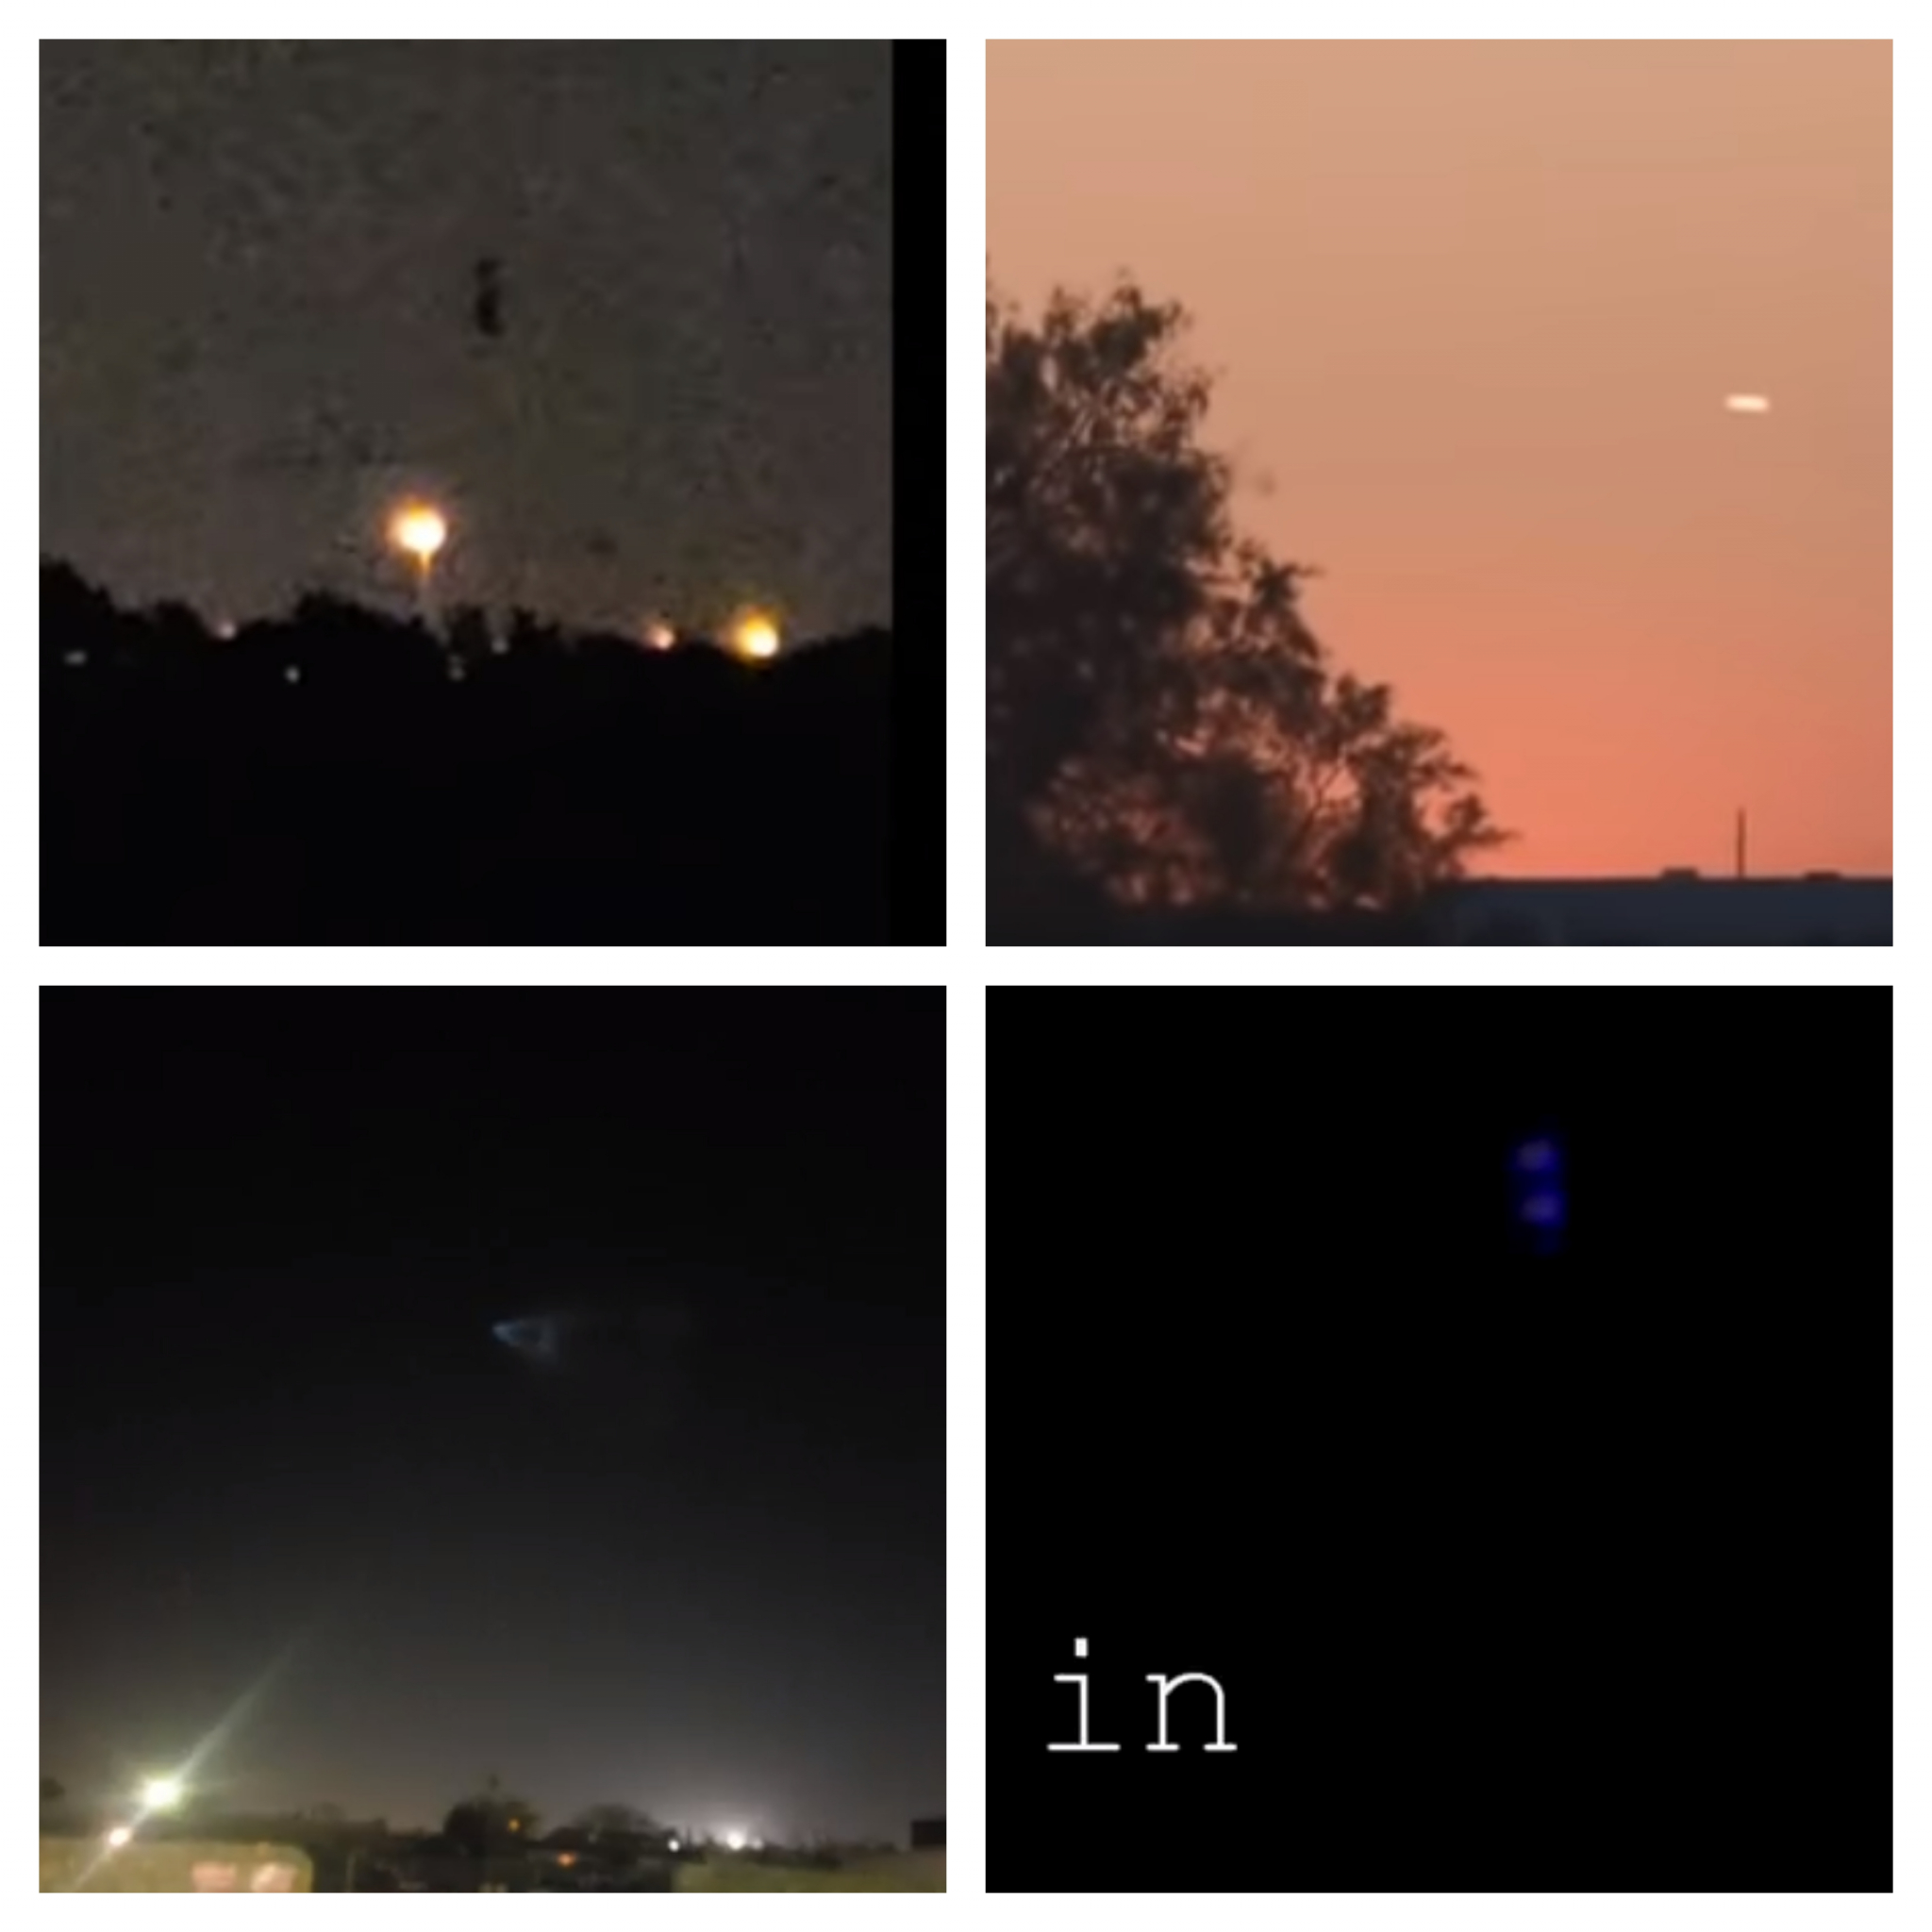 aliens or hoaxes  more than 70 ufo sightings reported in